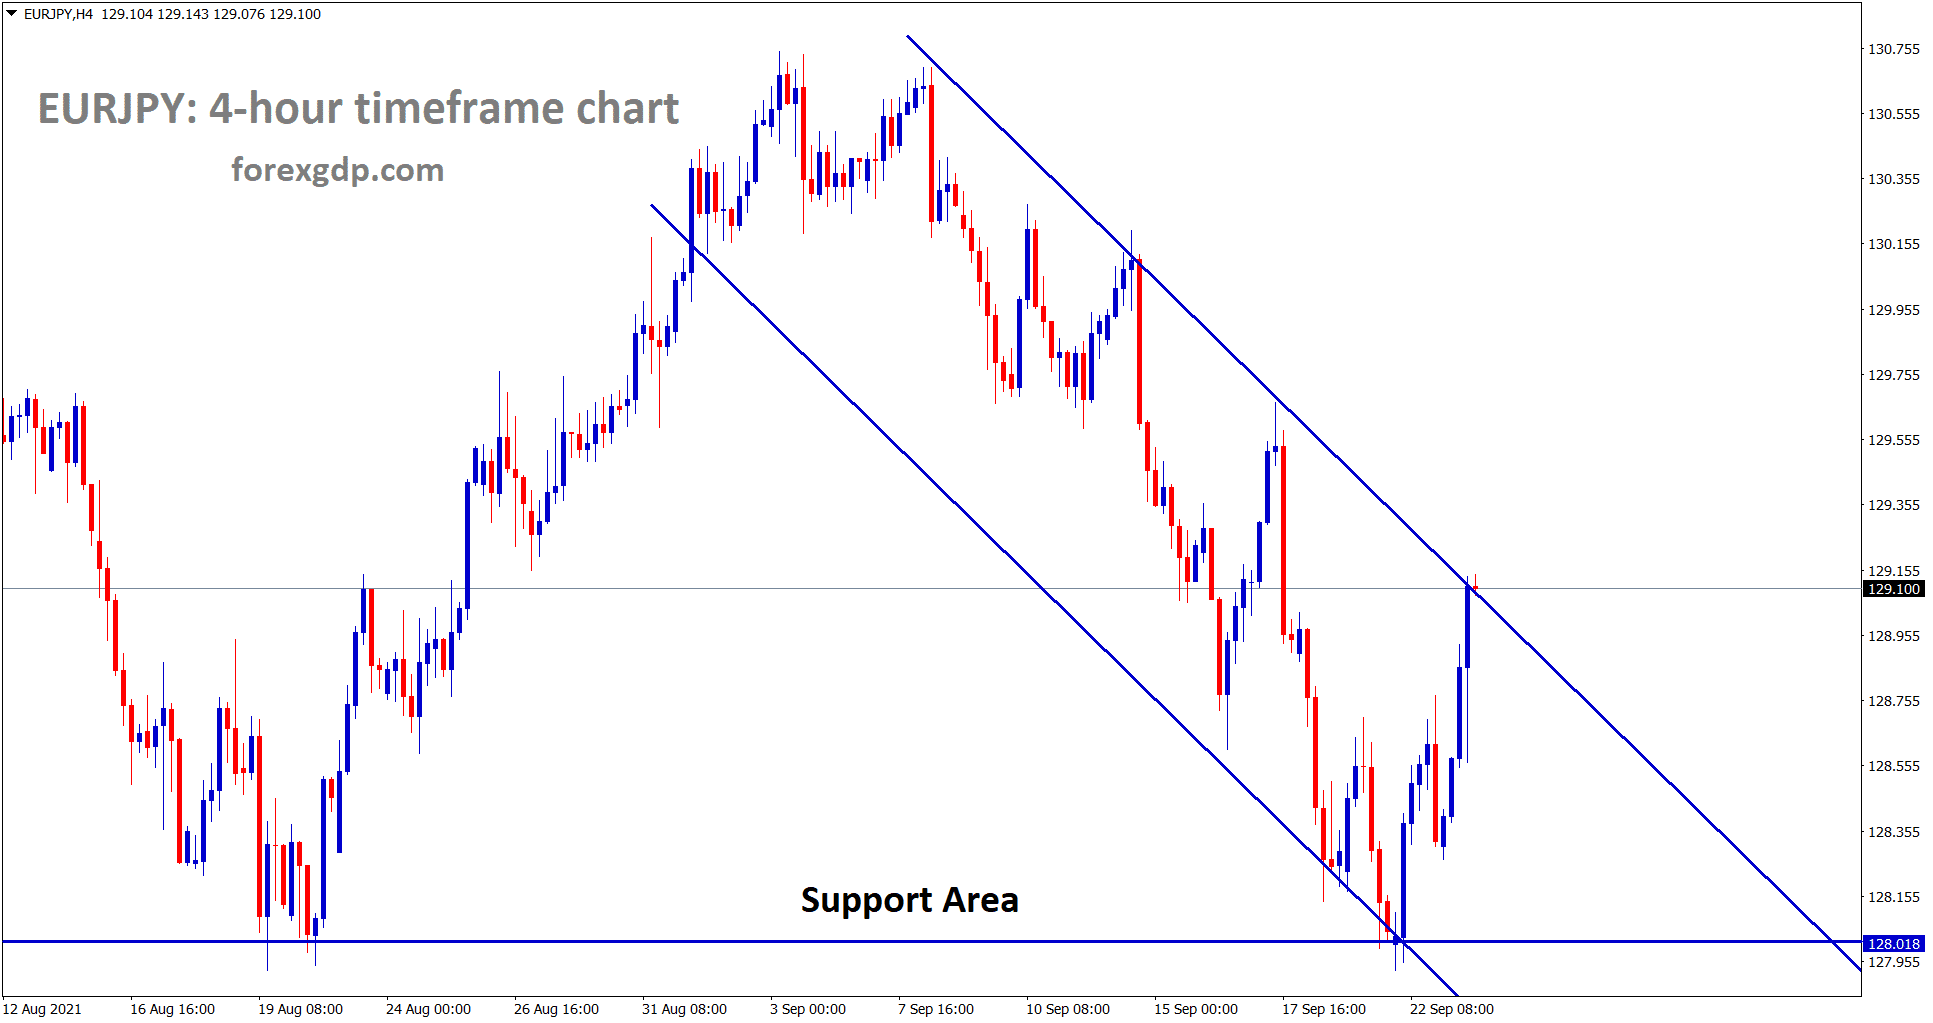 EURJPY rebound from the support area and reached the lower high of the descending channel